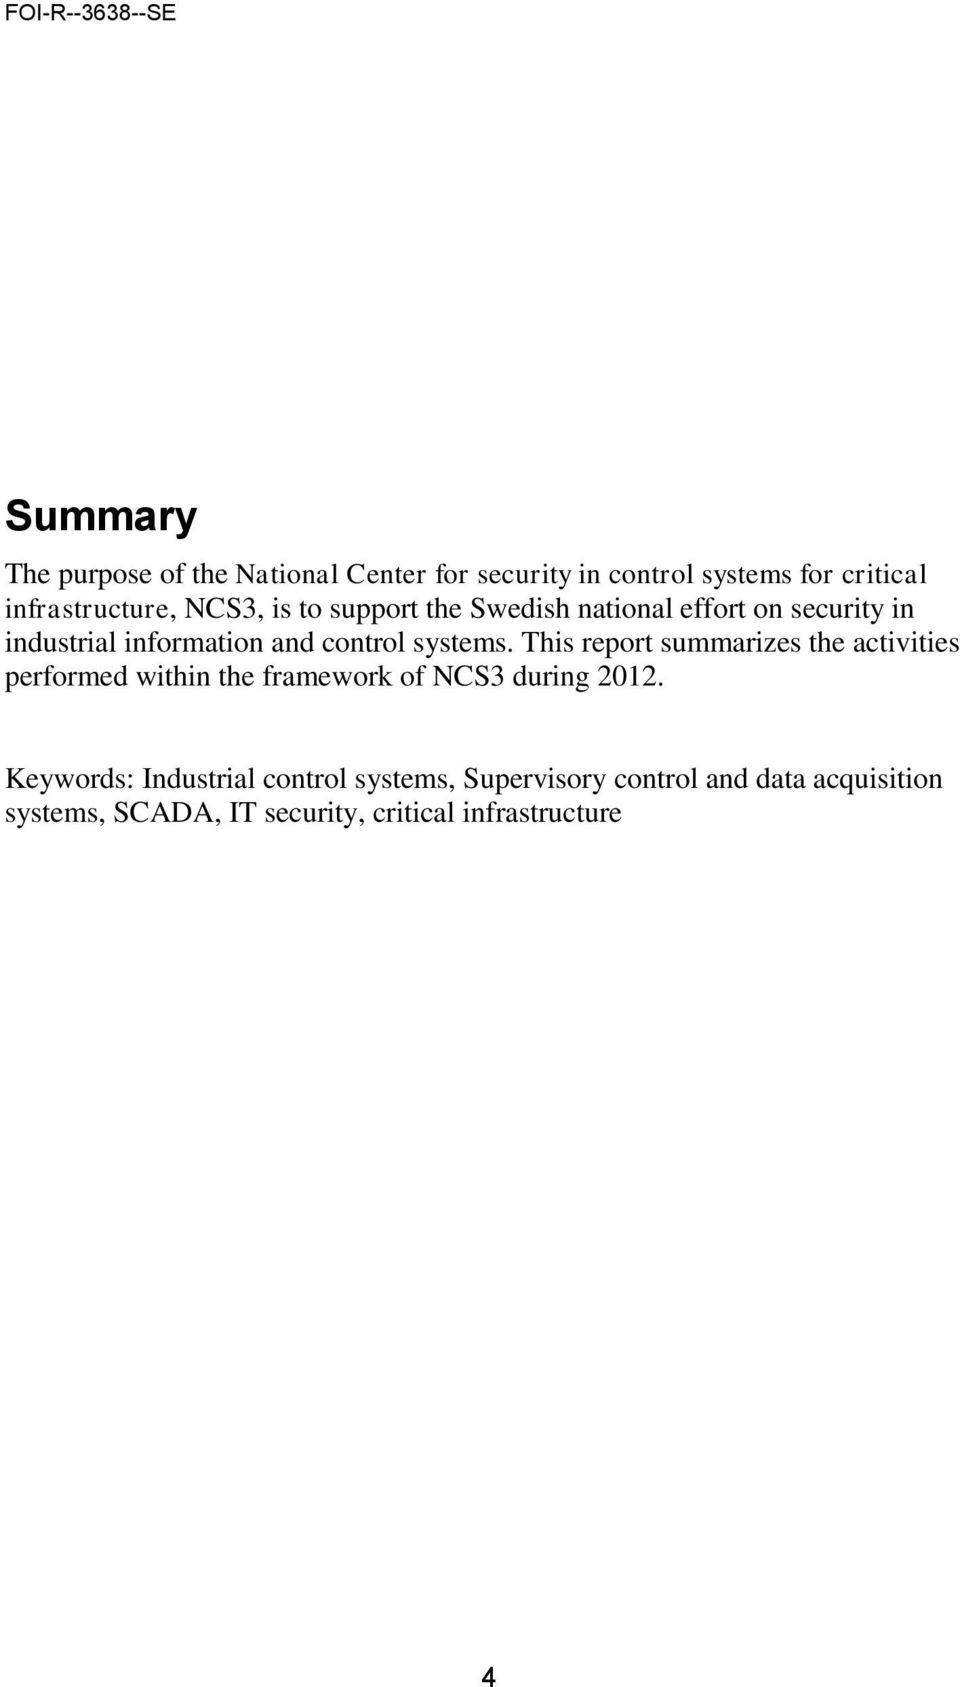 This report summarizes the activities performed within the framework of NCS3 during 2012.